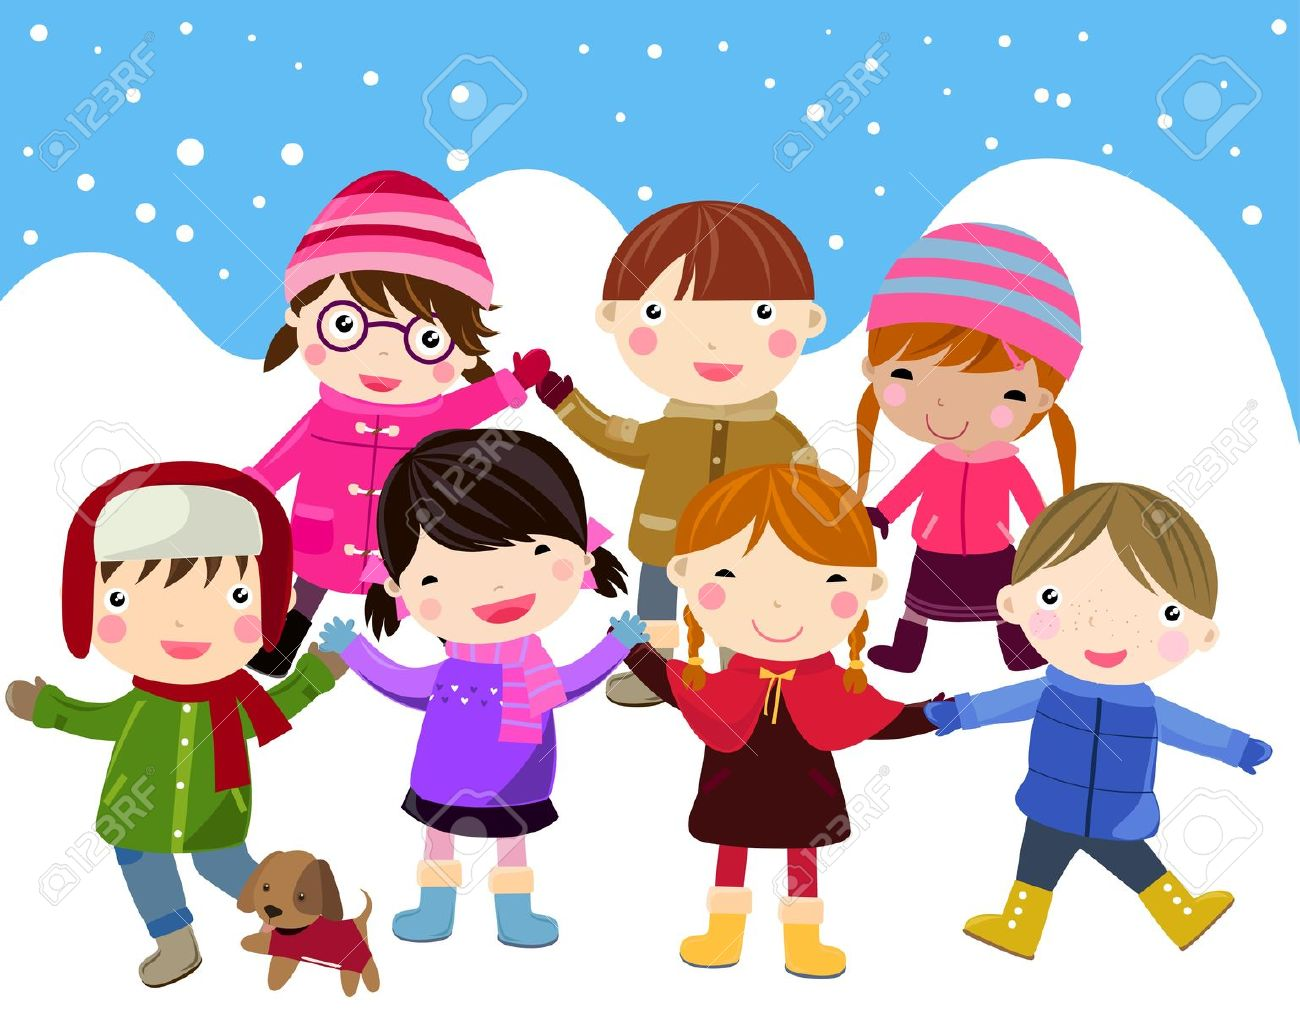 Snow fun clipart picture free download Free Snow Winter Cliparts, Download Free Clip Art, Free Clip Art on ... picture free download